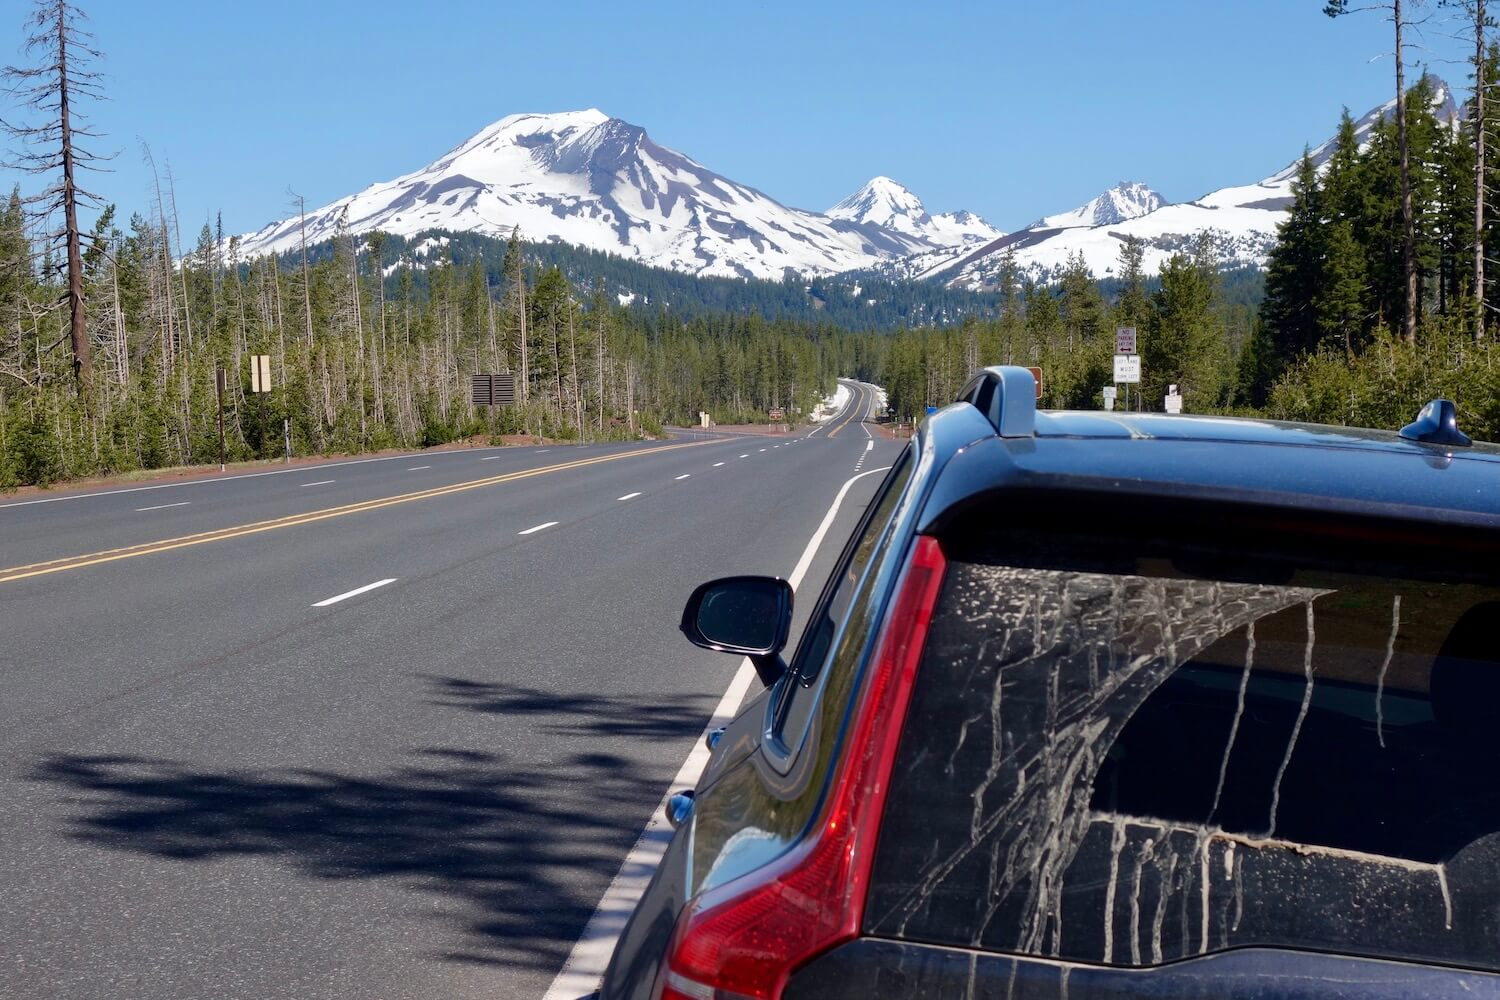 A blue SUV is parked on the side of a highway on an Oregon road trip while the South Sister of the Cascade Mountains rises up snow-covered, toward the blue sky.